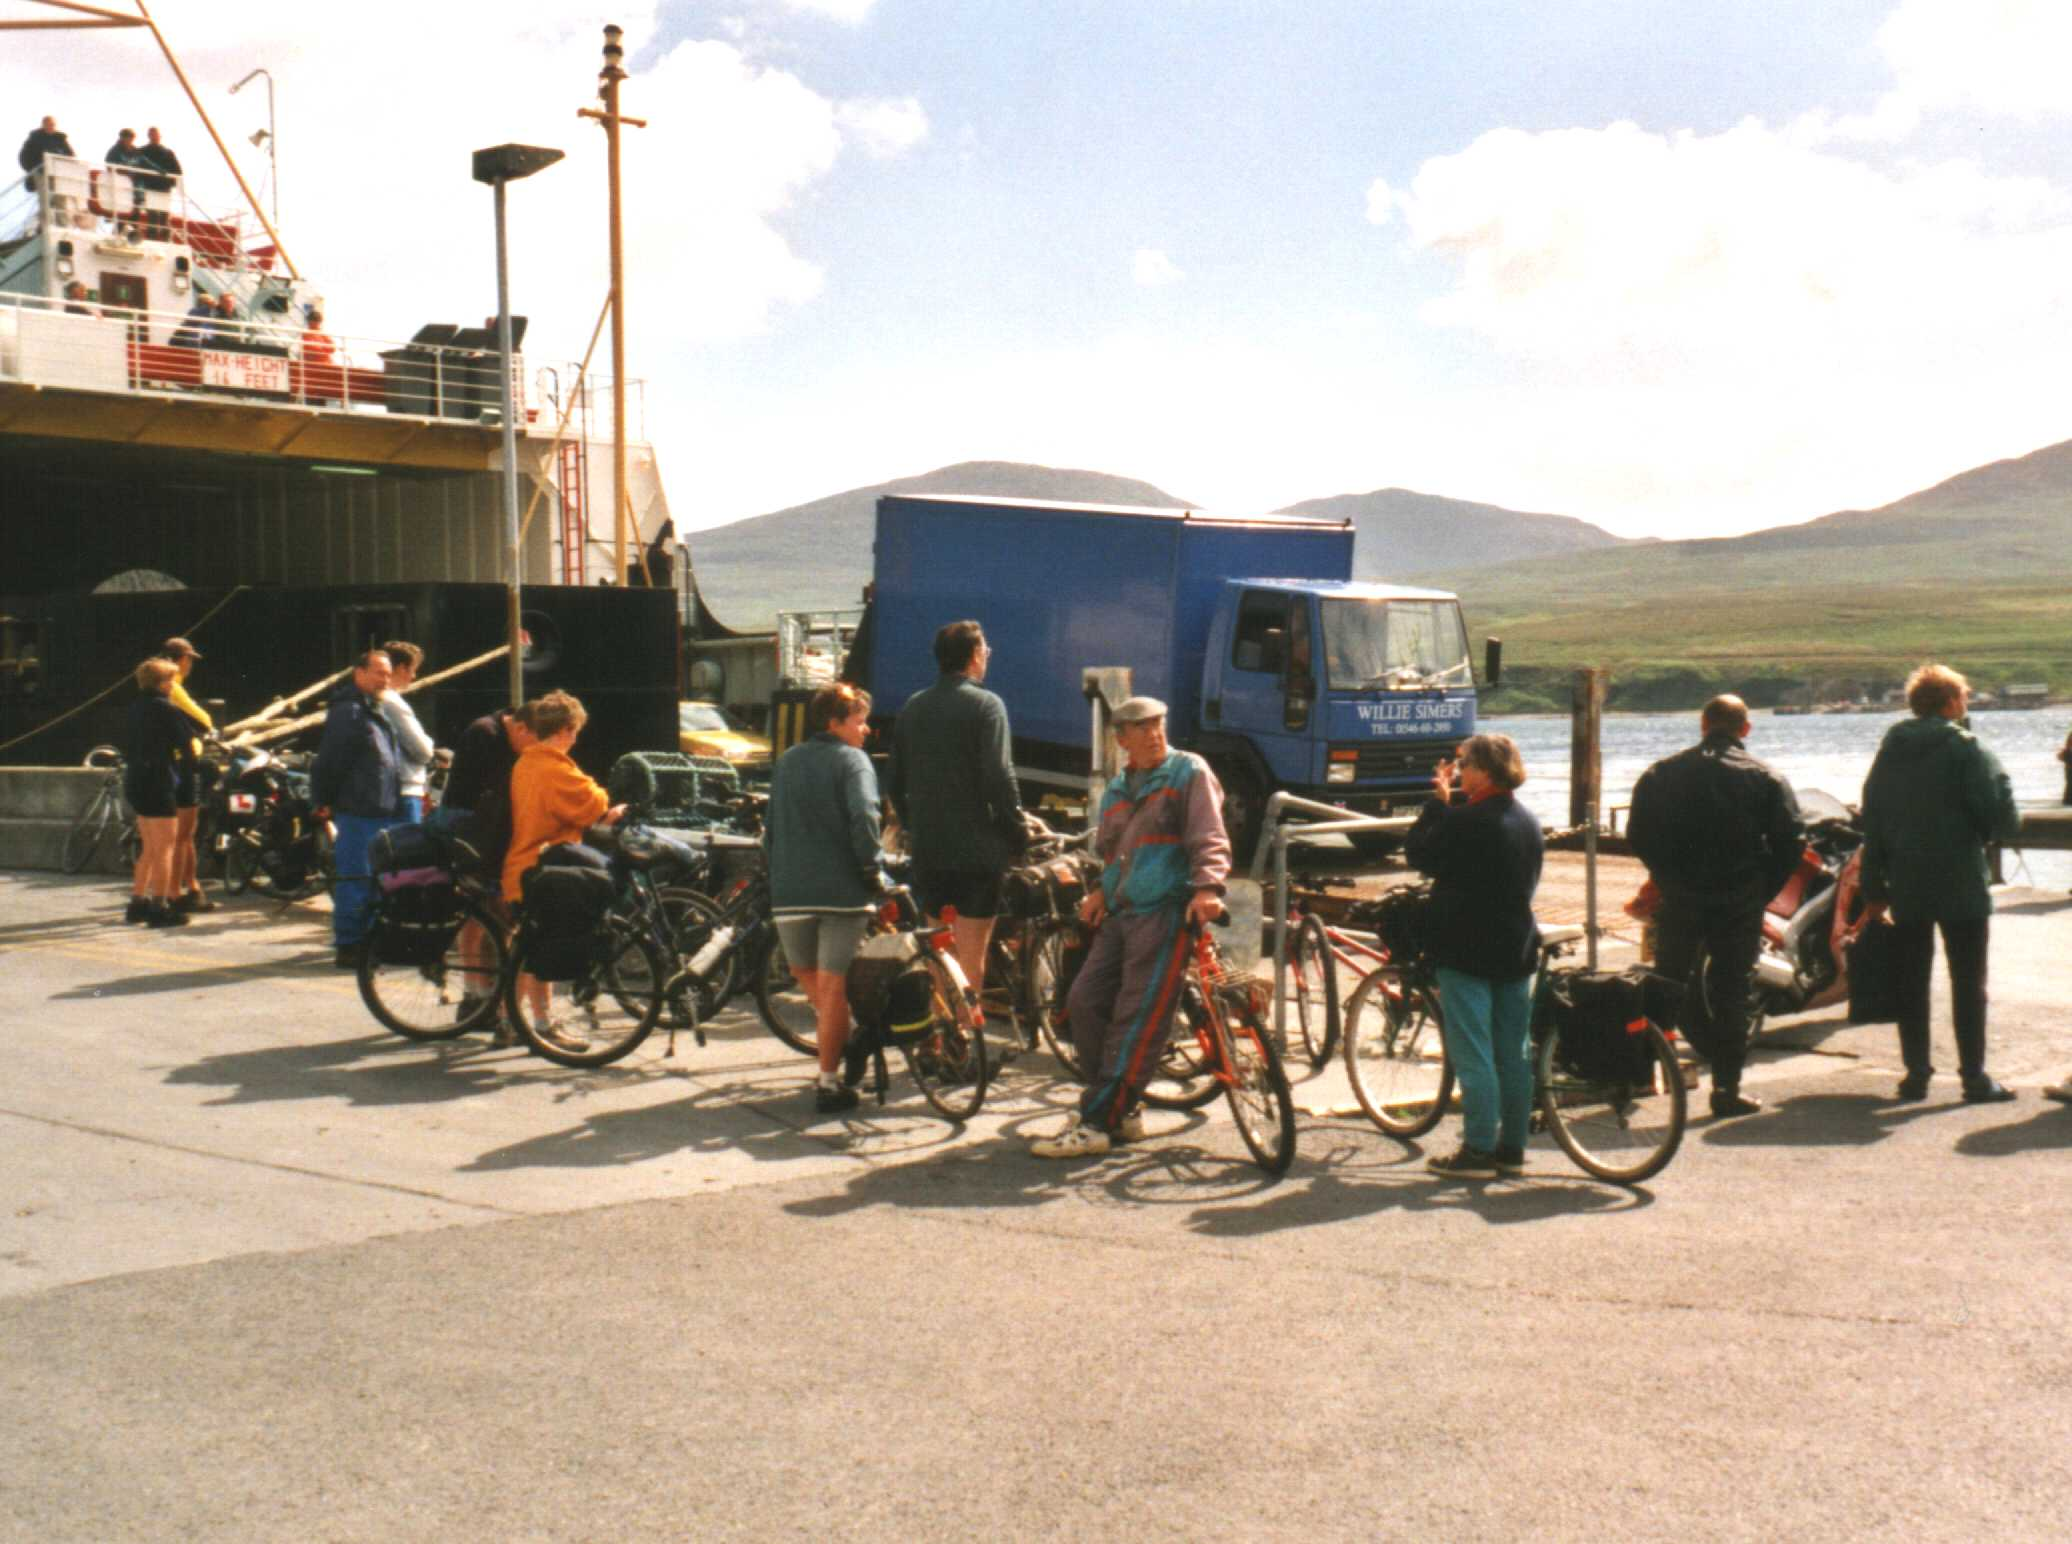 The ferry from Port Askaig, Islay to Colonsay with some more cyclists who happened to be around